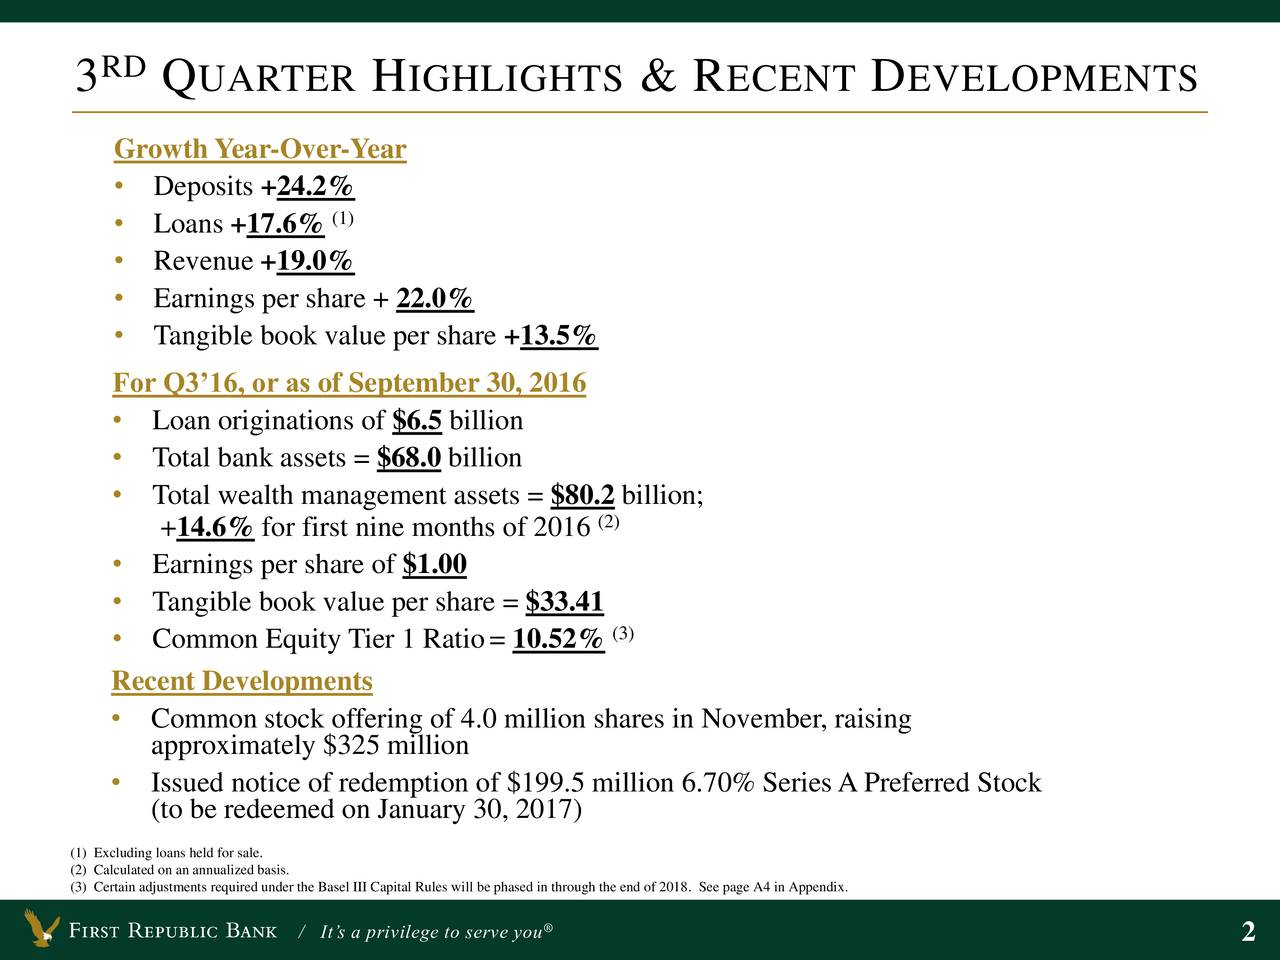 Growth Year-Over-Year Deposits +24.2% Loans +17.6% (1) Revenue +19.0% Earnings per share + 22.0% Tangible book value per share +13.5% For Q316, or as of September 30, 2016 Loan originations of $6.5 billion Total bank assets = $68.0 billion Total wealth management assets = $80.2 billion; +14.6% for first nine months of 2016 Earnings per share of $1.00 Tangible book value per share = $33.41 Common Equity Tier 1 Ratio= 10.52%(3) Recent Developments Common stock offering of 4.0 million shares in November, raising approximately $325 million Issued notice of redemption of $199.5 million 6.70% Series APreferred Stock (to be redeemed on January 30, 2017) (1) Excluding loans held for sale. (2) Calculated on an annualized basis. (3) Certain adjustments required under the Basel III Capital Rules will be phased in through the end of 2018. See page A4 in Appendix. / Its a privilege to serve you 2